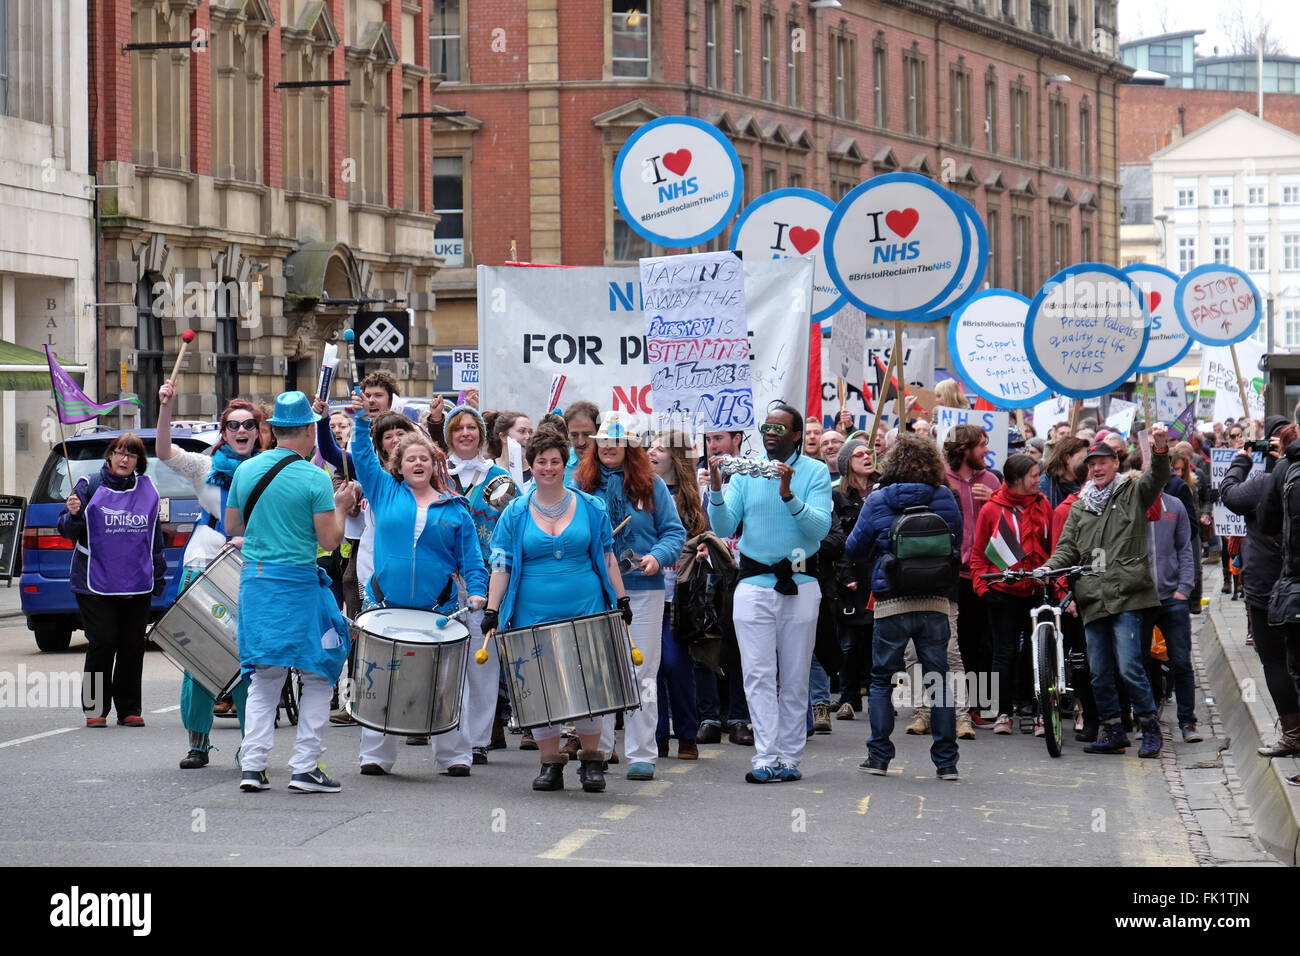 Protestors against planned changes to the National Health Service march through the streets of Bristol, England. - Stock Image